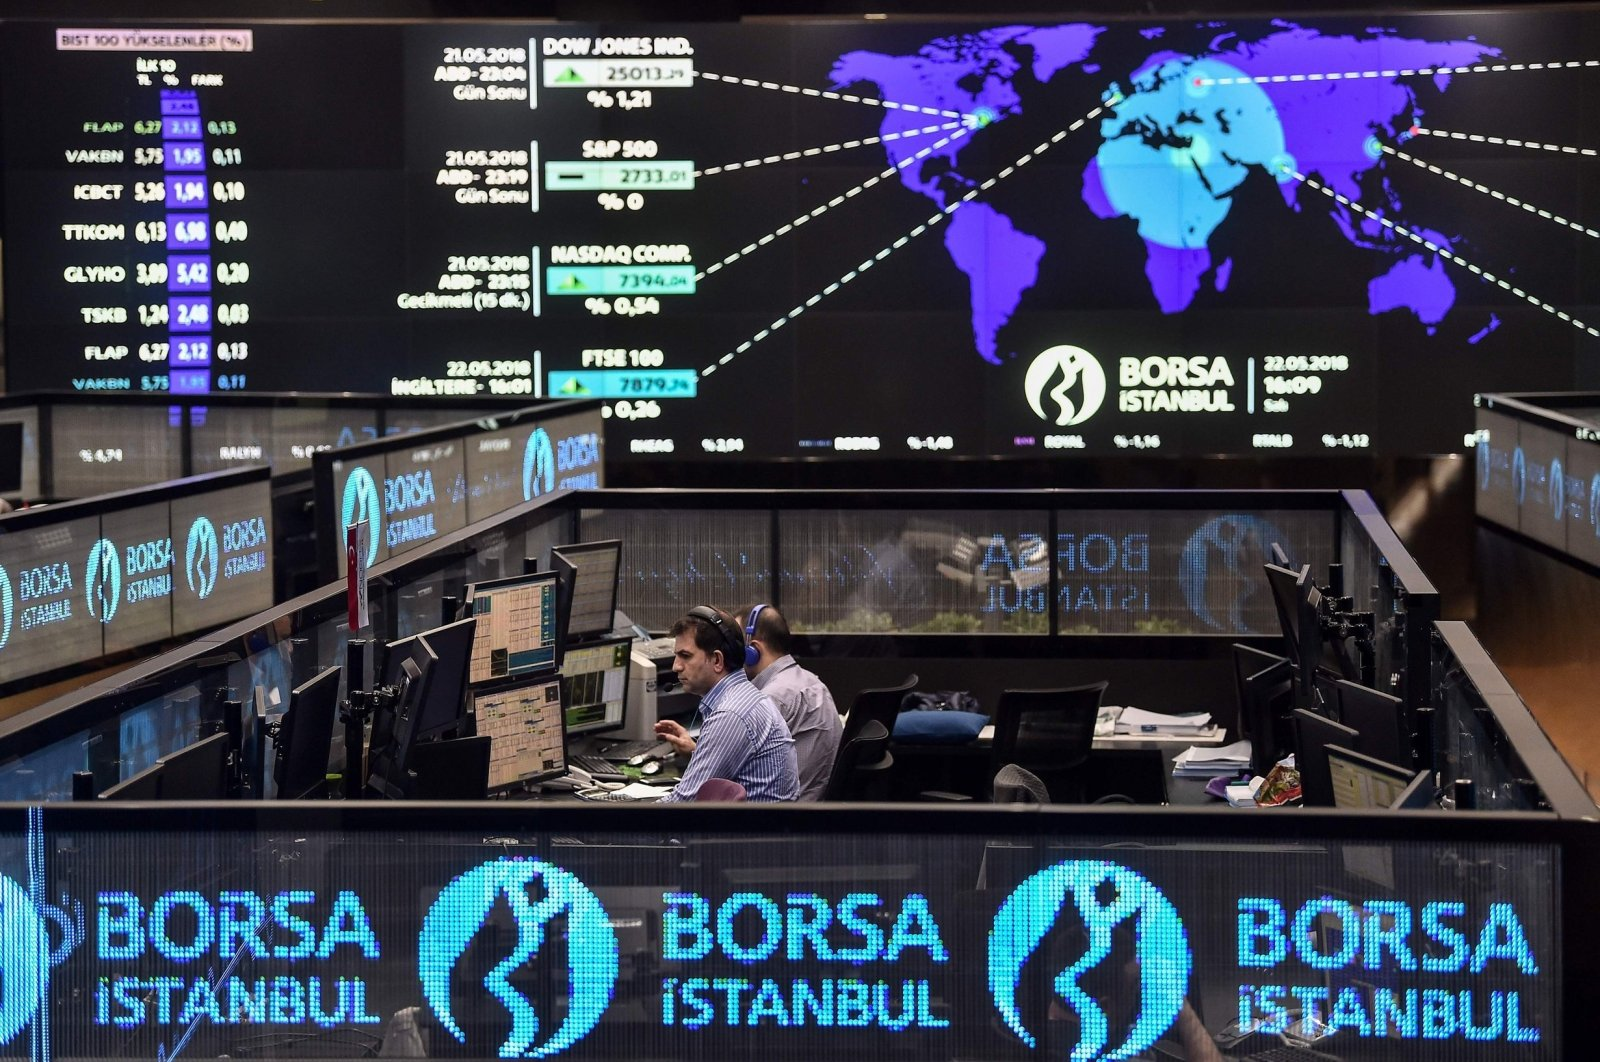 Stockbrokers work at their desks on the floor of Borsa Istanbul, Istanbul, Turkey, May 22, 2018. (AFP Photo)